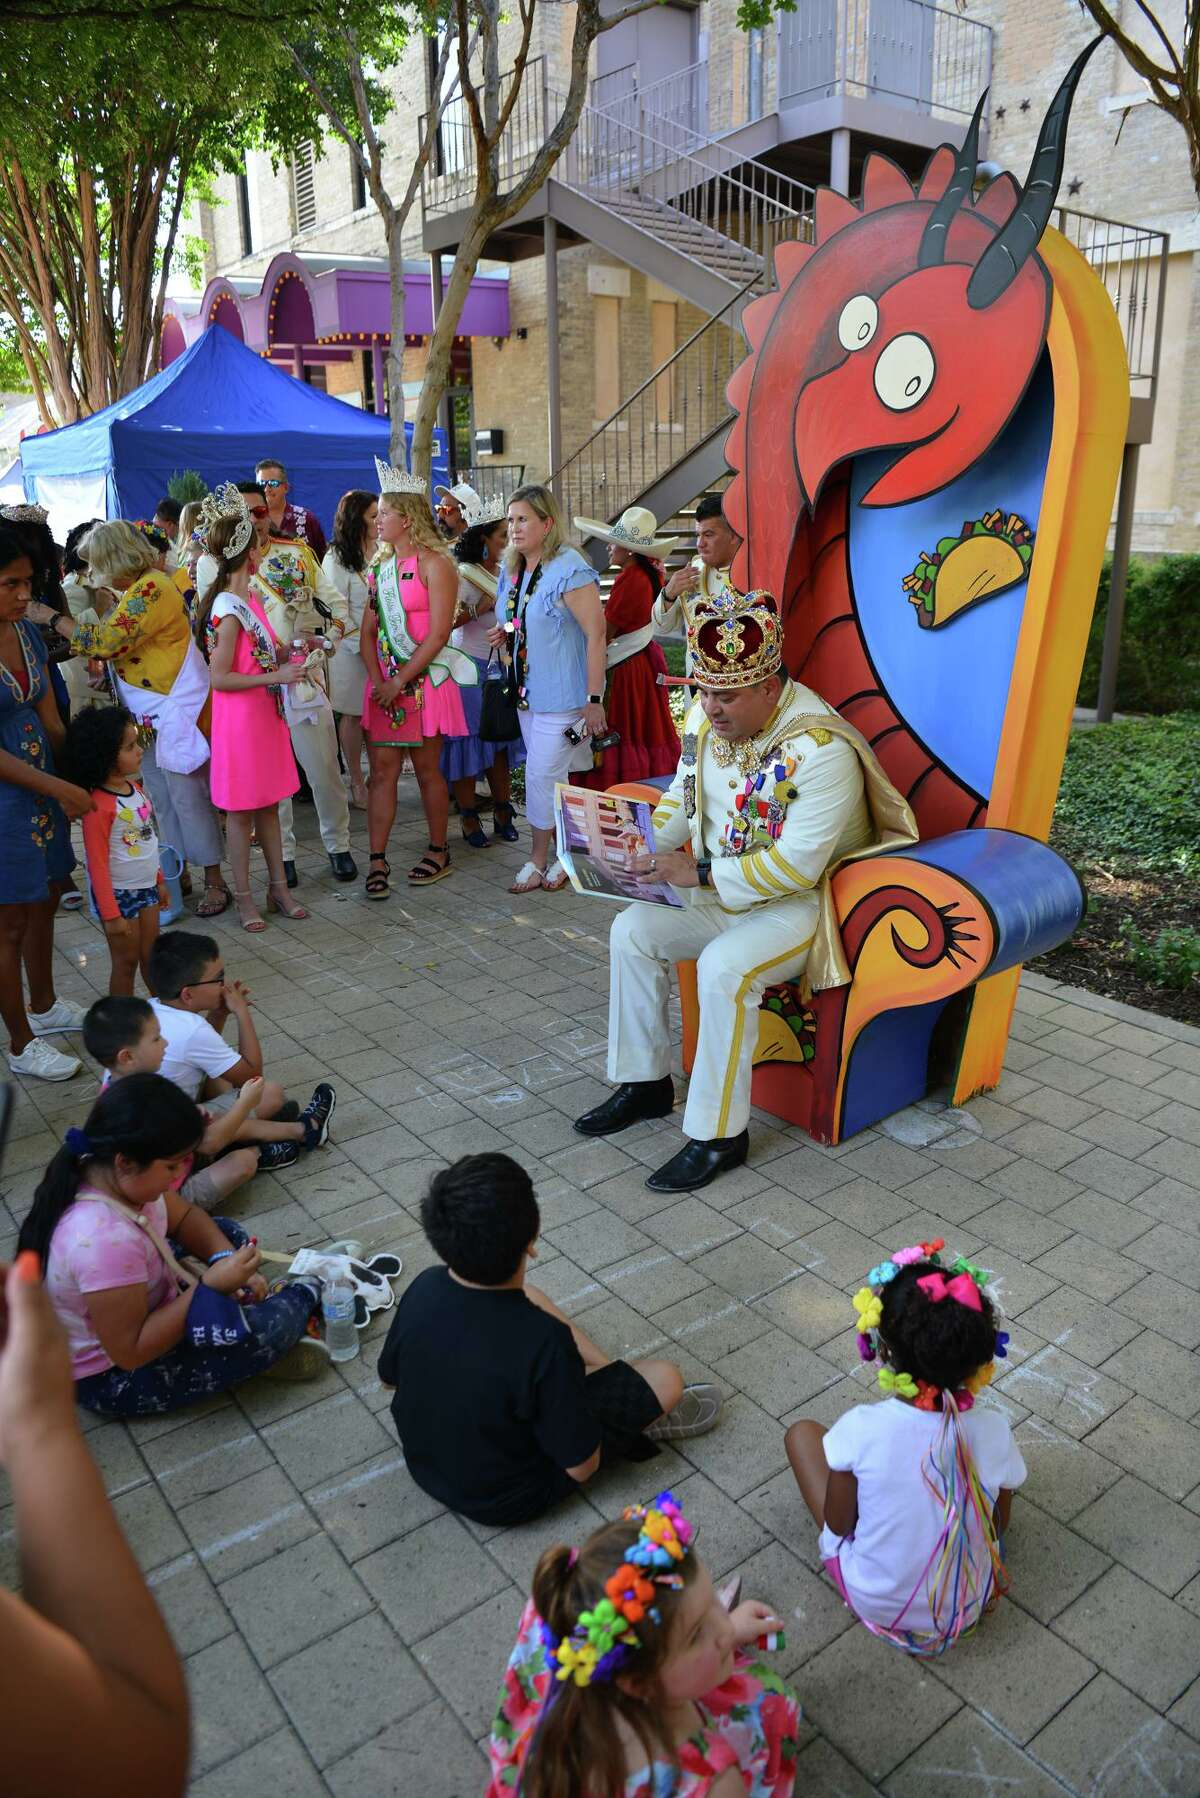 Rey Feo LXXII, Thomas Aguillon, reads to children outside of the Magic Theater on Thursday during Fiesta Fiesta, the start of Fiesta for 2021.